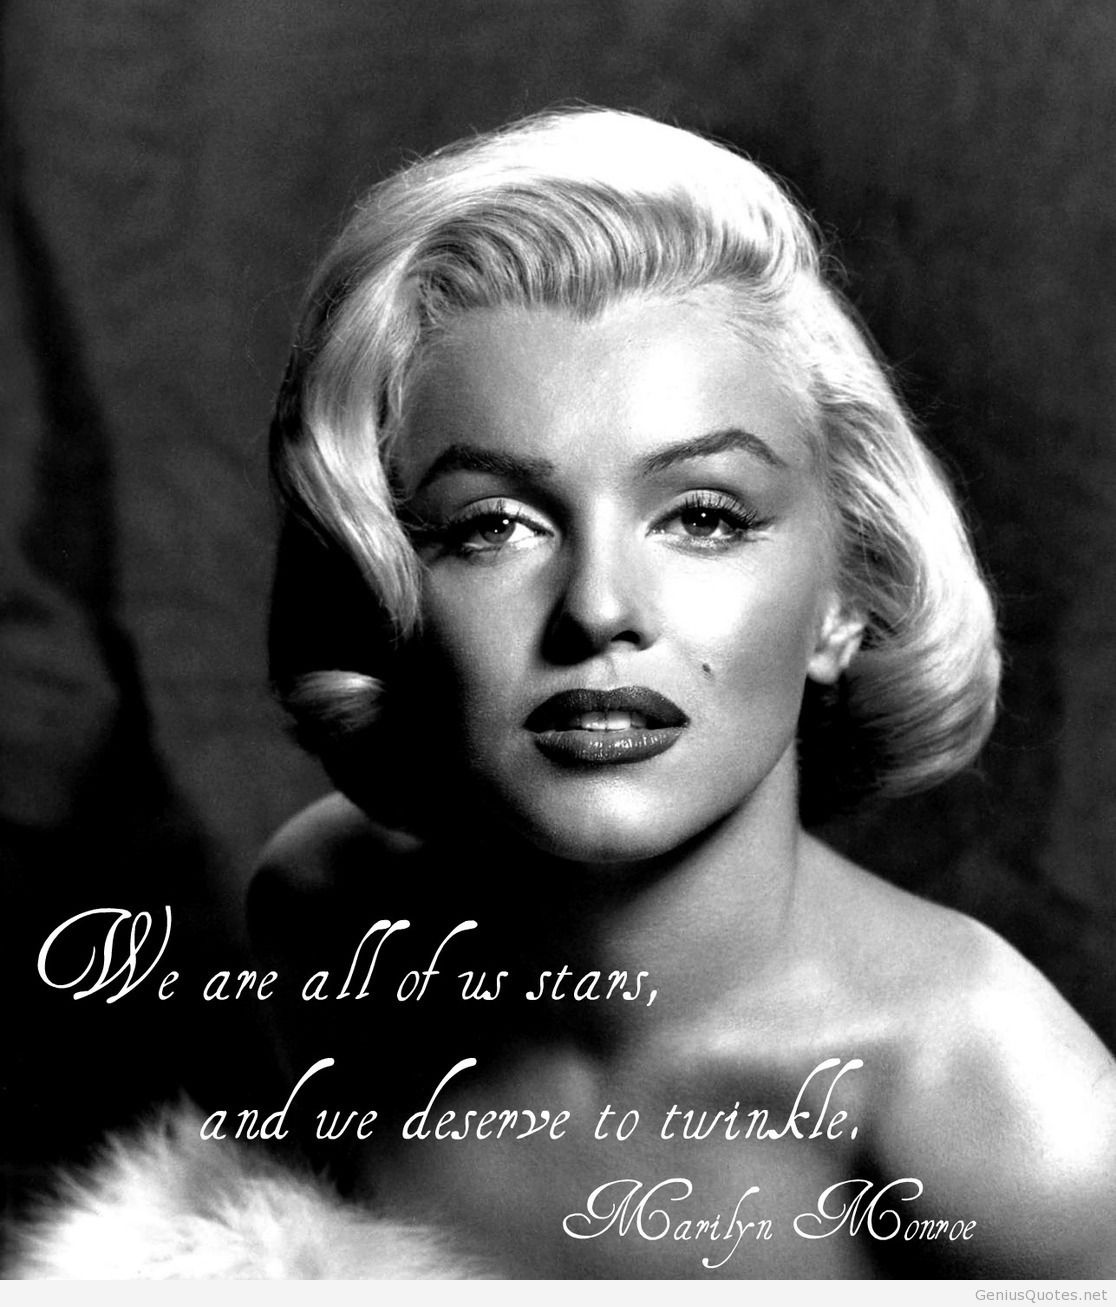 Marilyn Monroe Love Quotes for Him and Her - Quotes Square |Marilyn Monroe Quotes And Sayings About Love